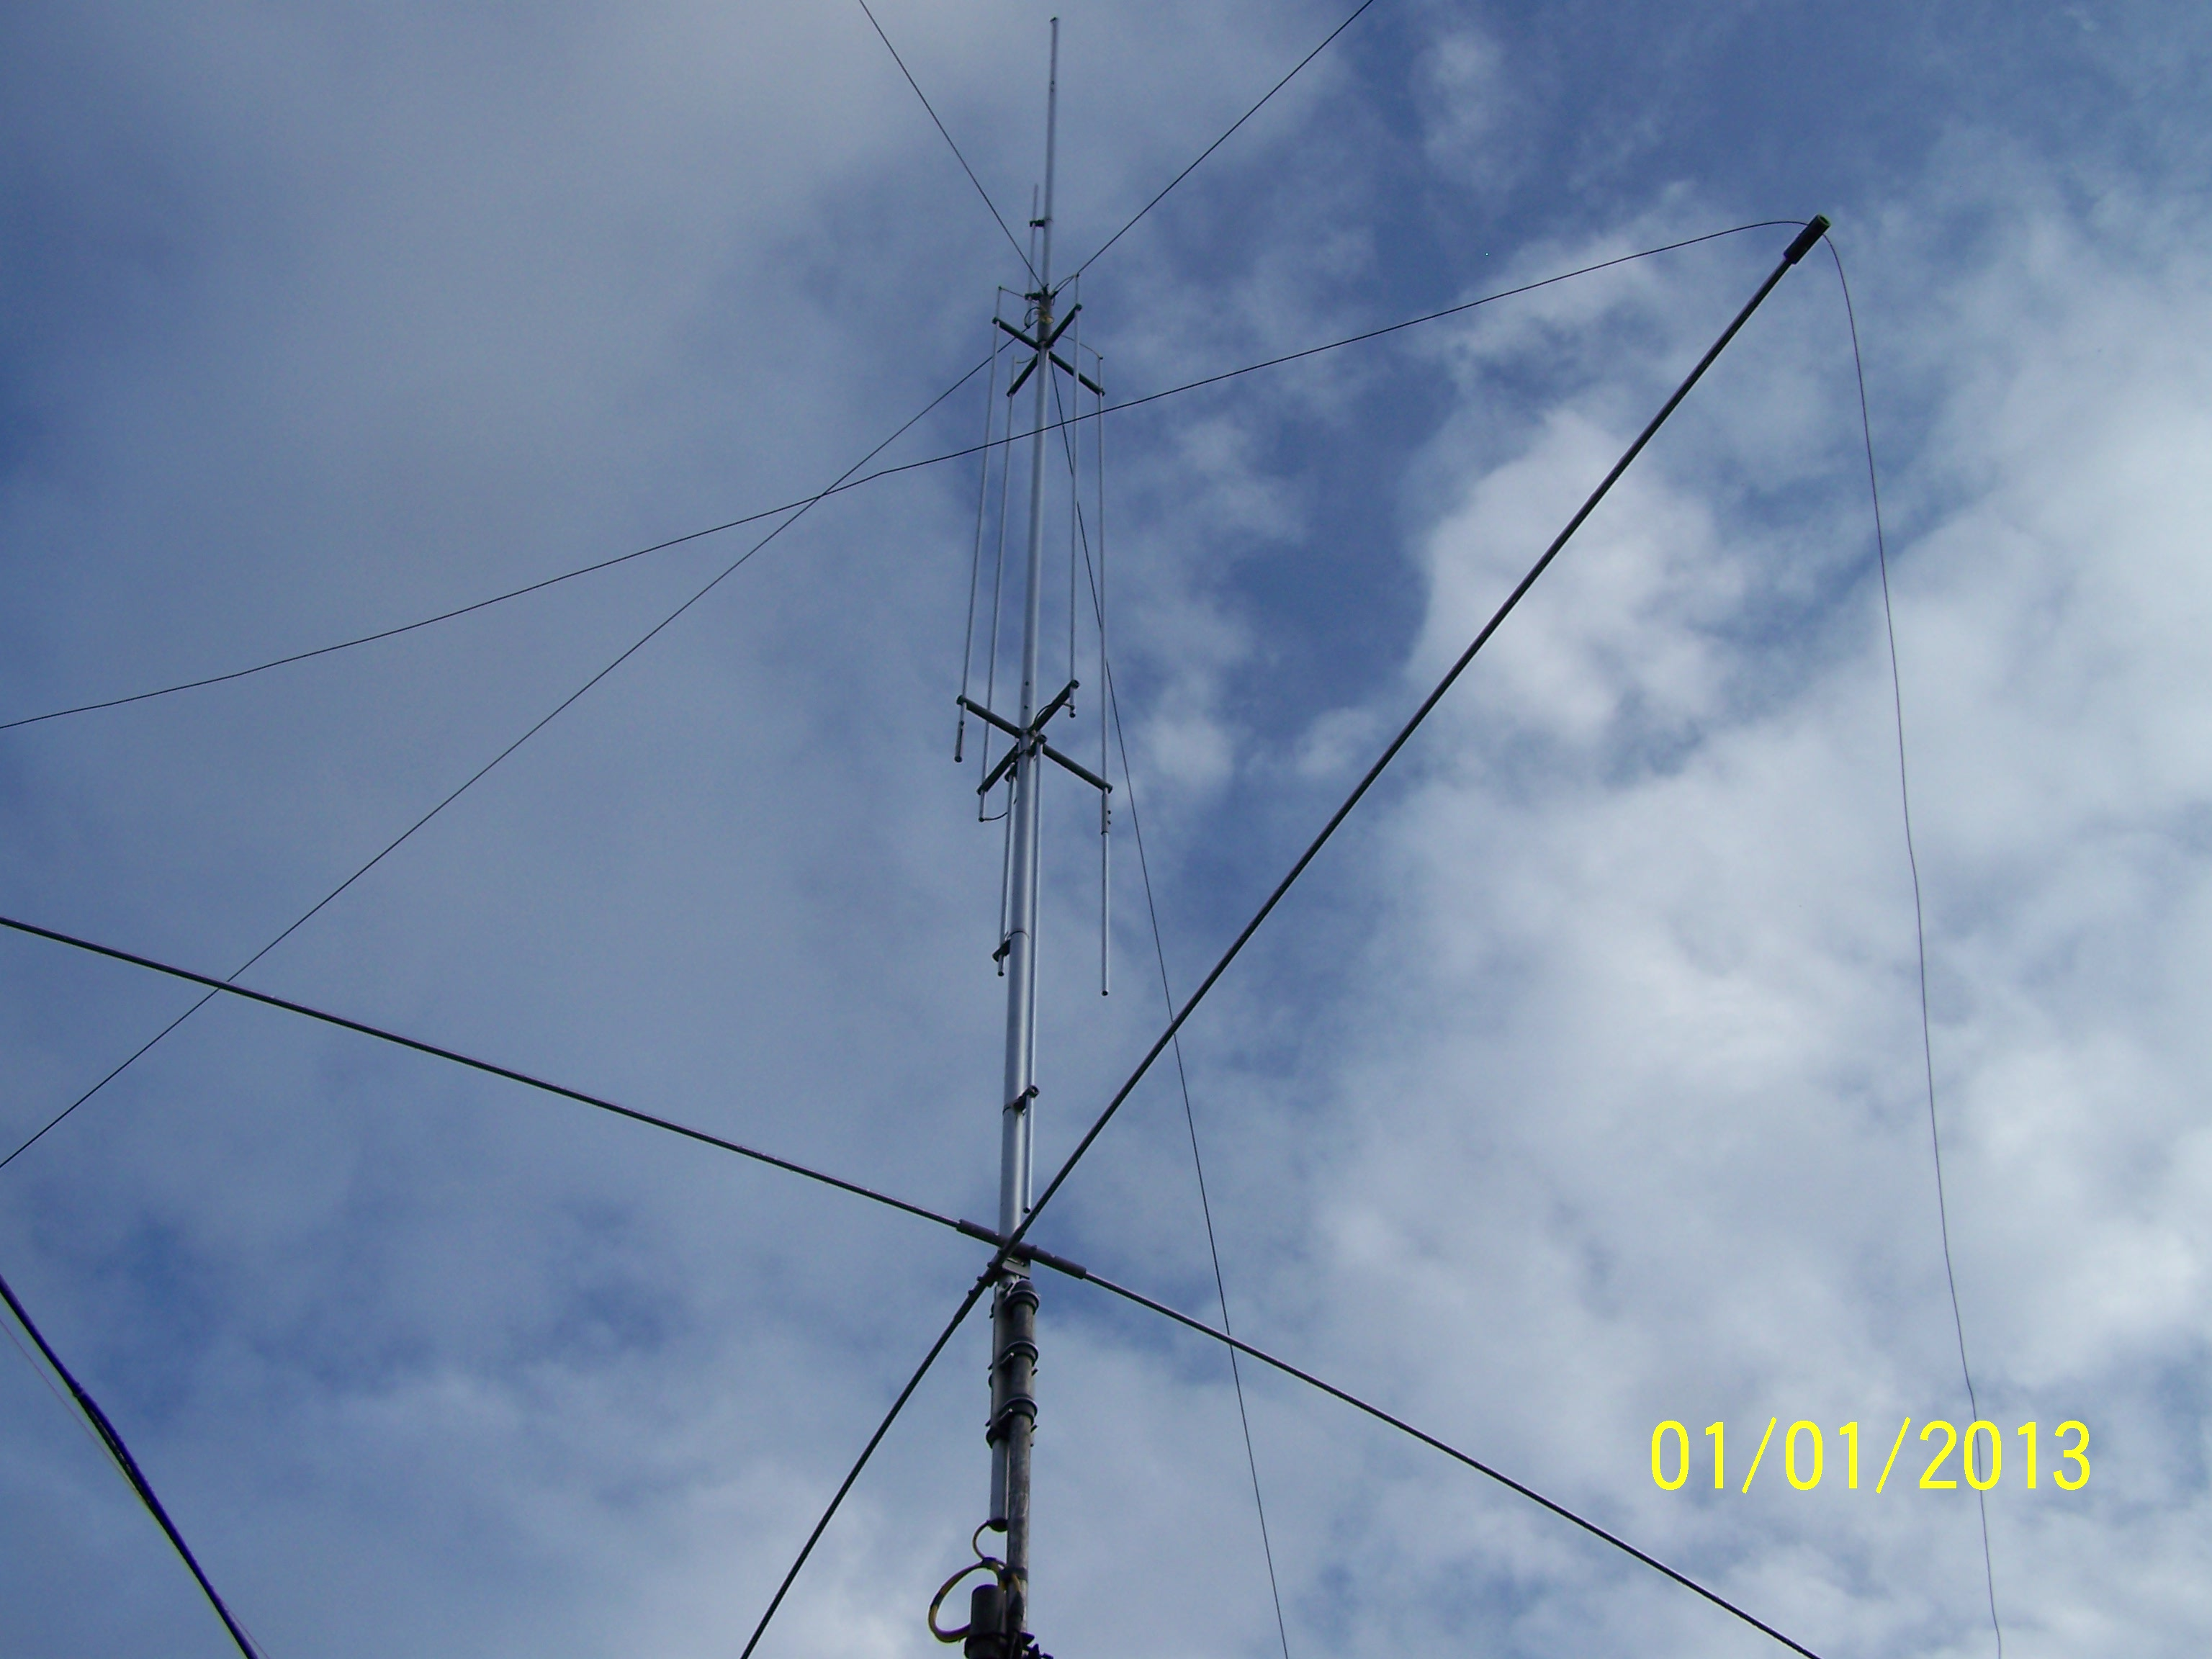 Gap amateur antenna that